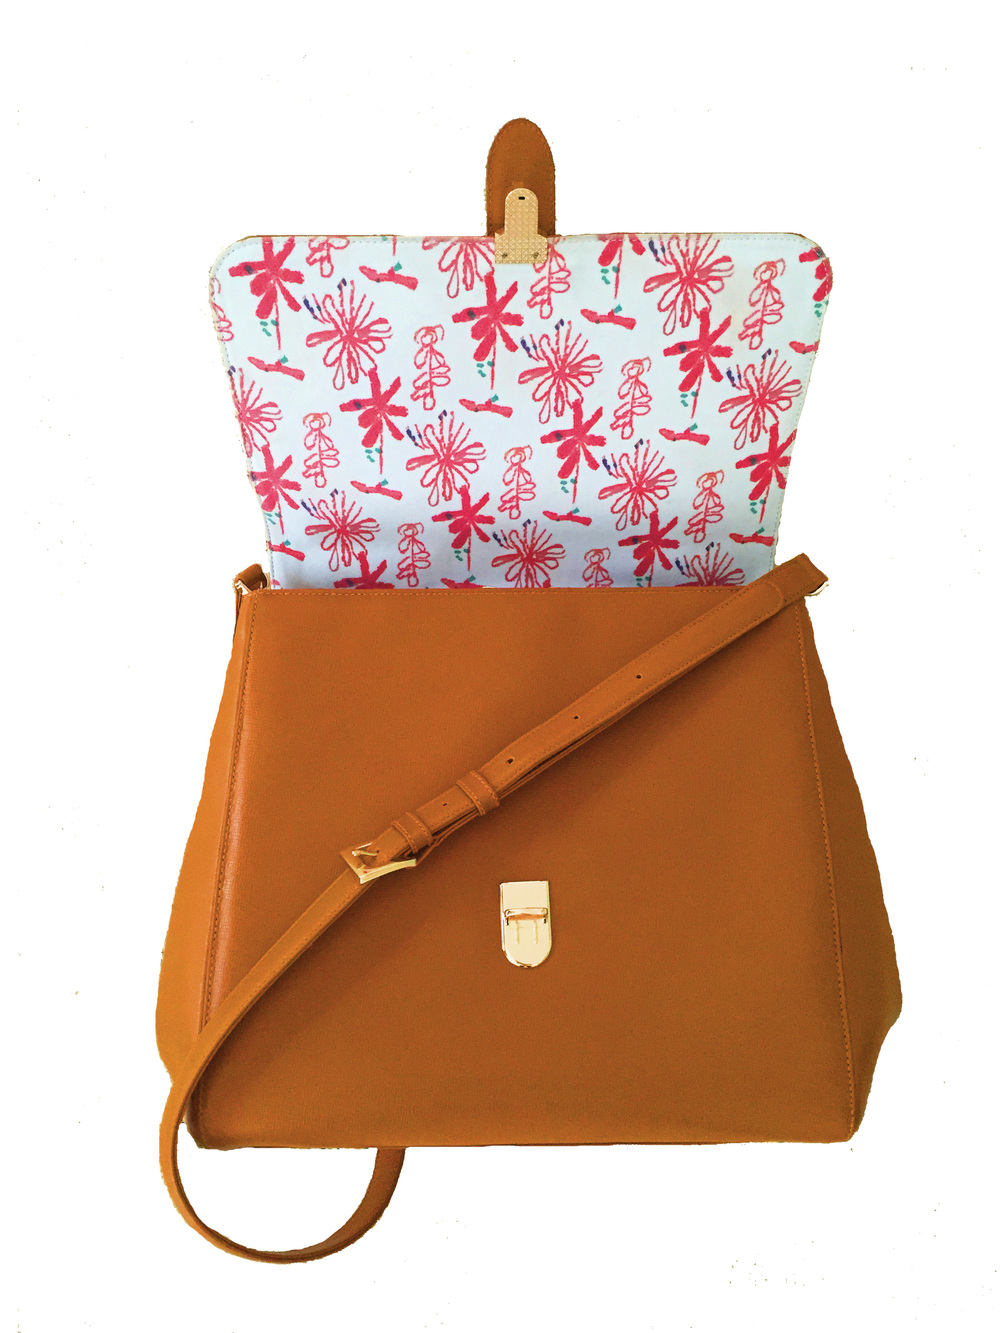 Noel's print featured in the Codet Satchel - Tan. Available for pre-order August 5th.